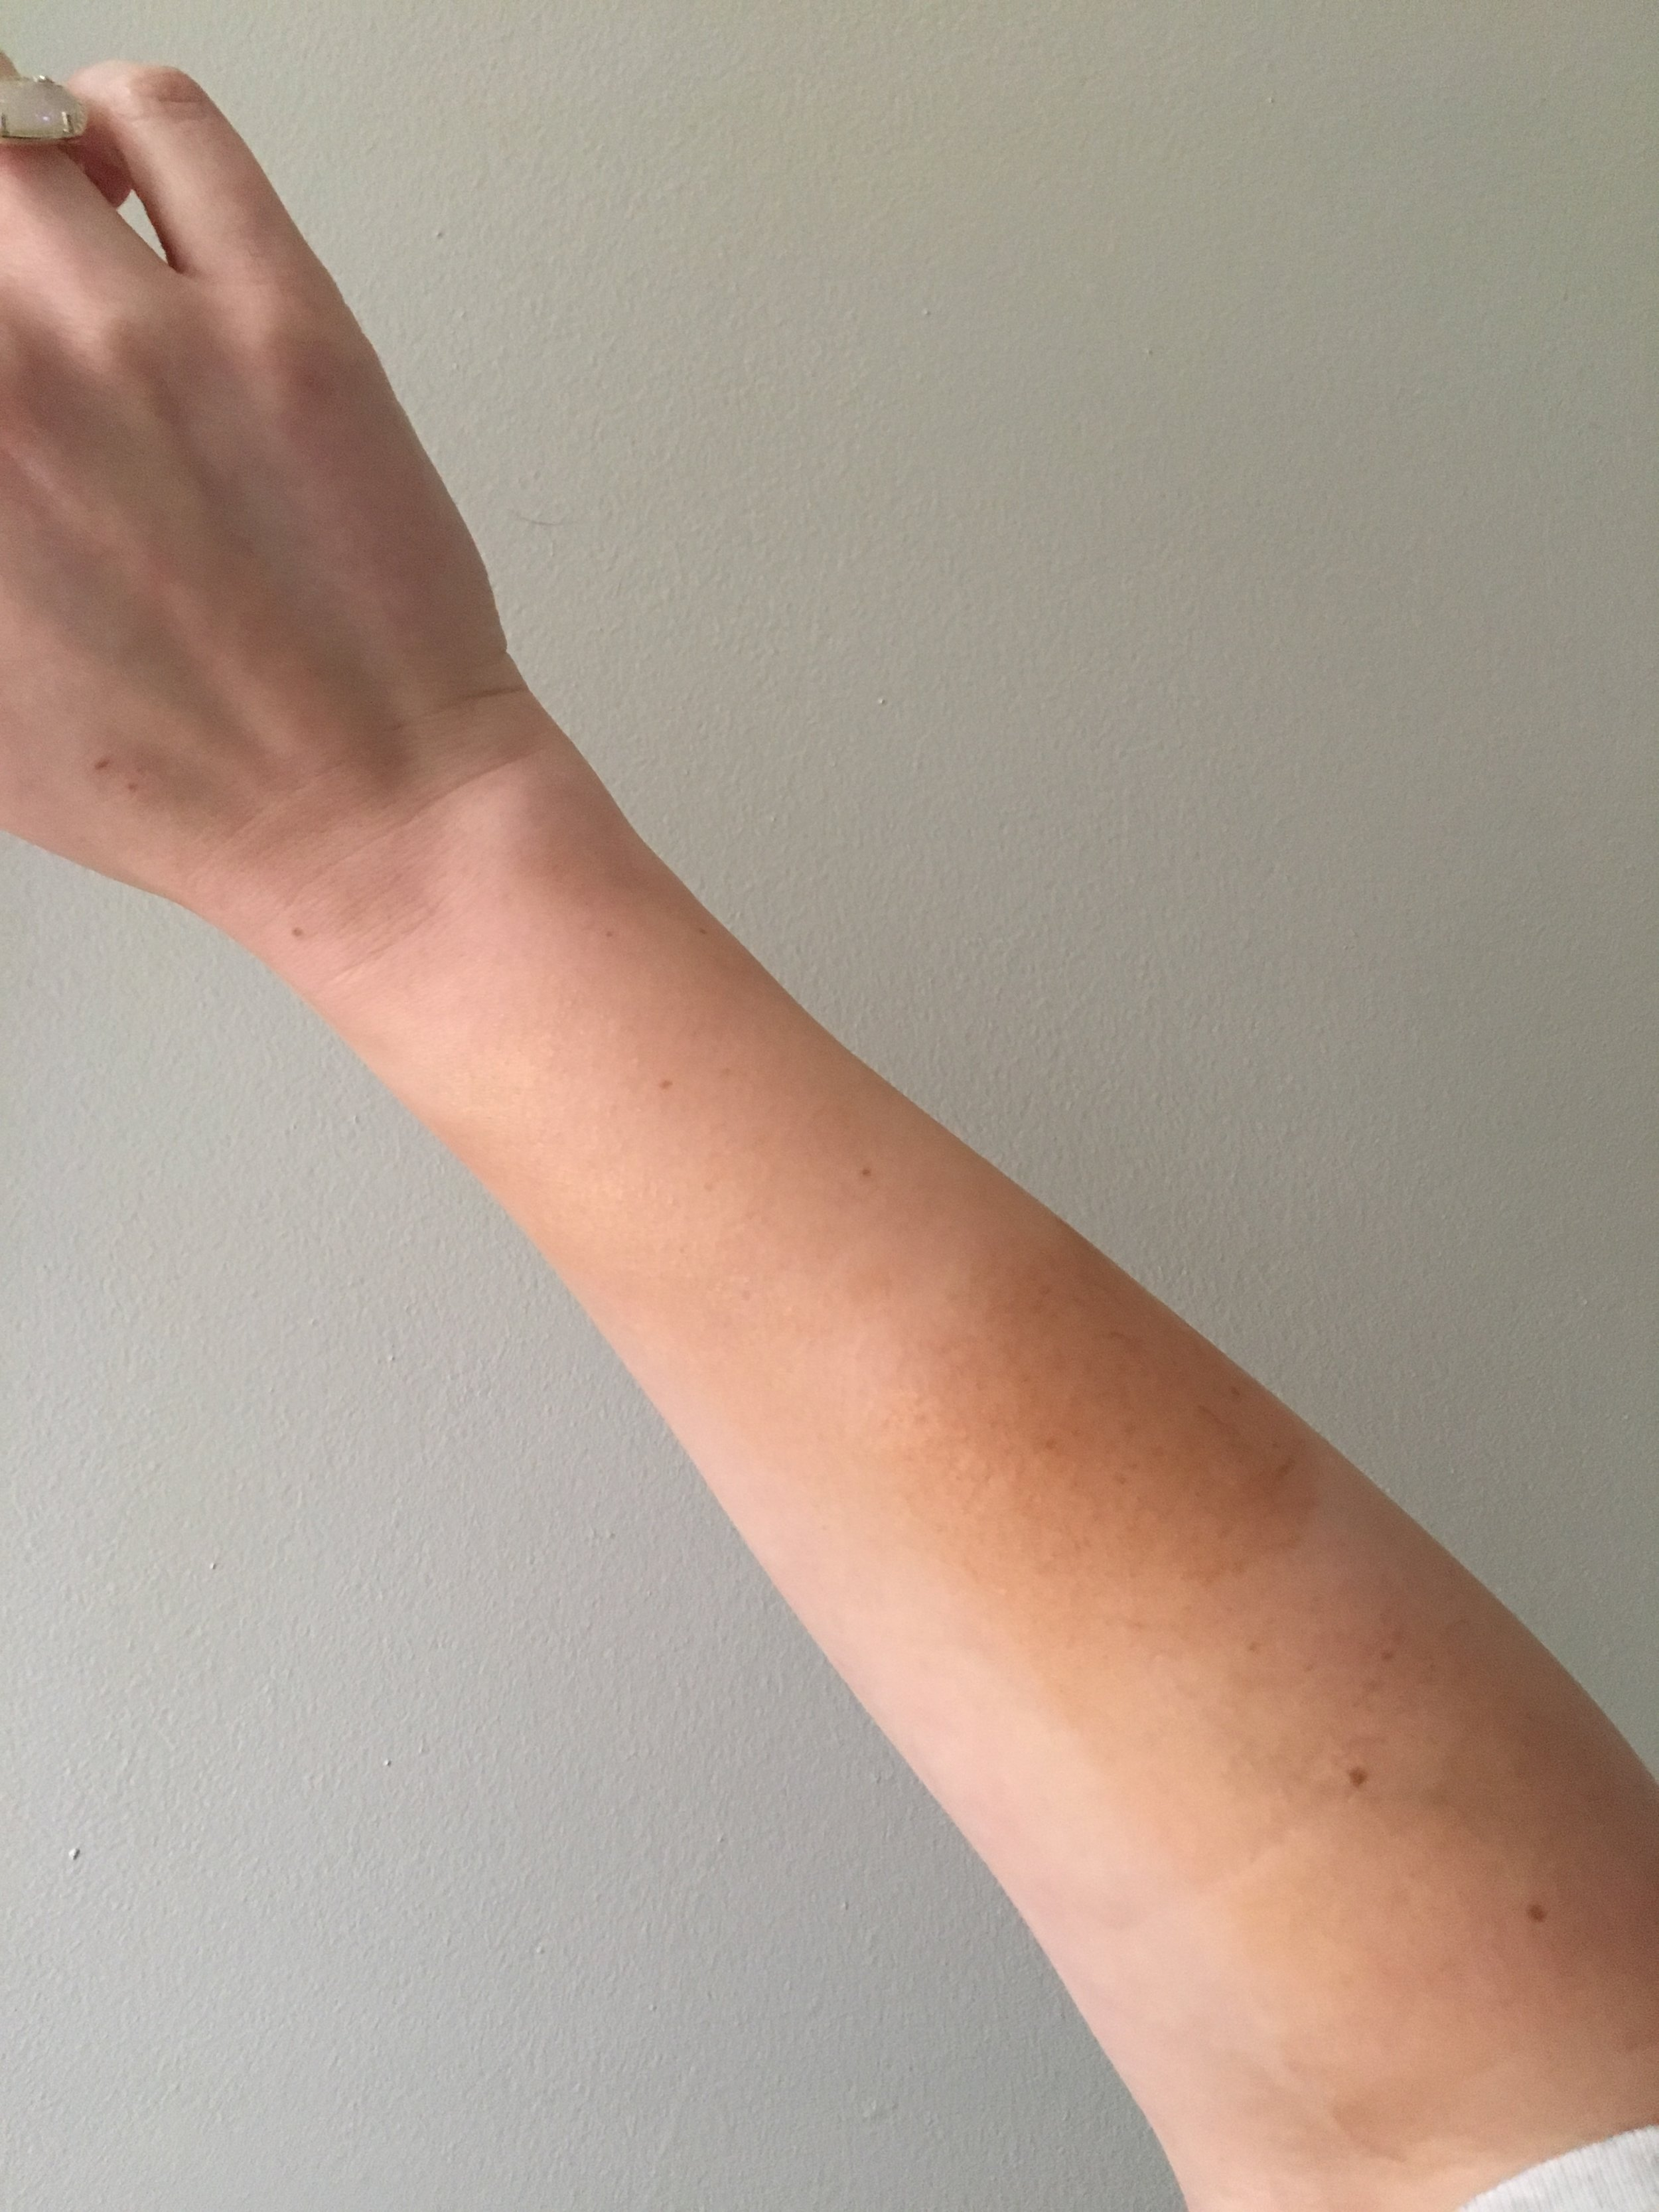 From wrist to elbow:  Melanie Mills Hollywood Gleam  in Rose Gold, Bronze Gold and Deep Gold